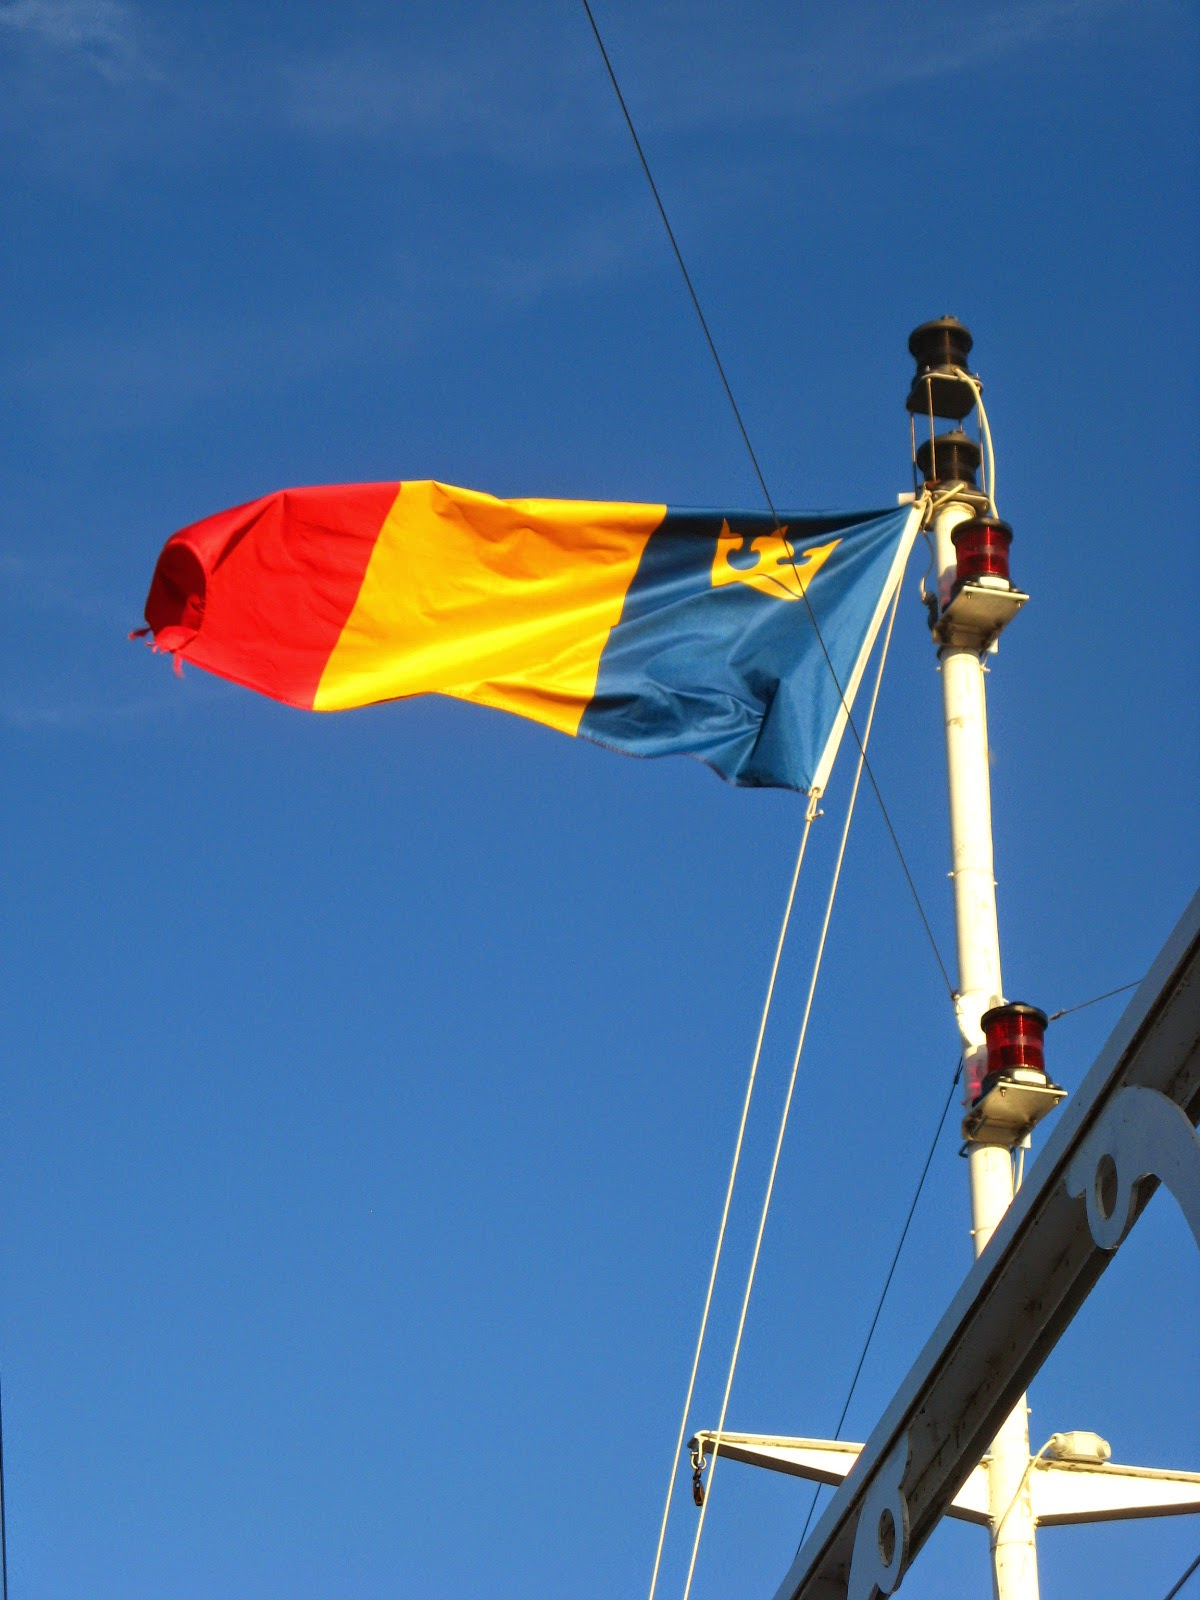 Queen's University flag on a ship's mast